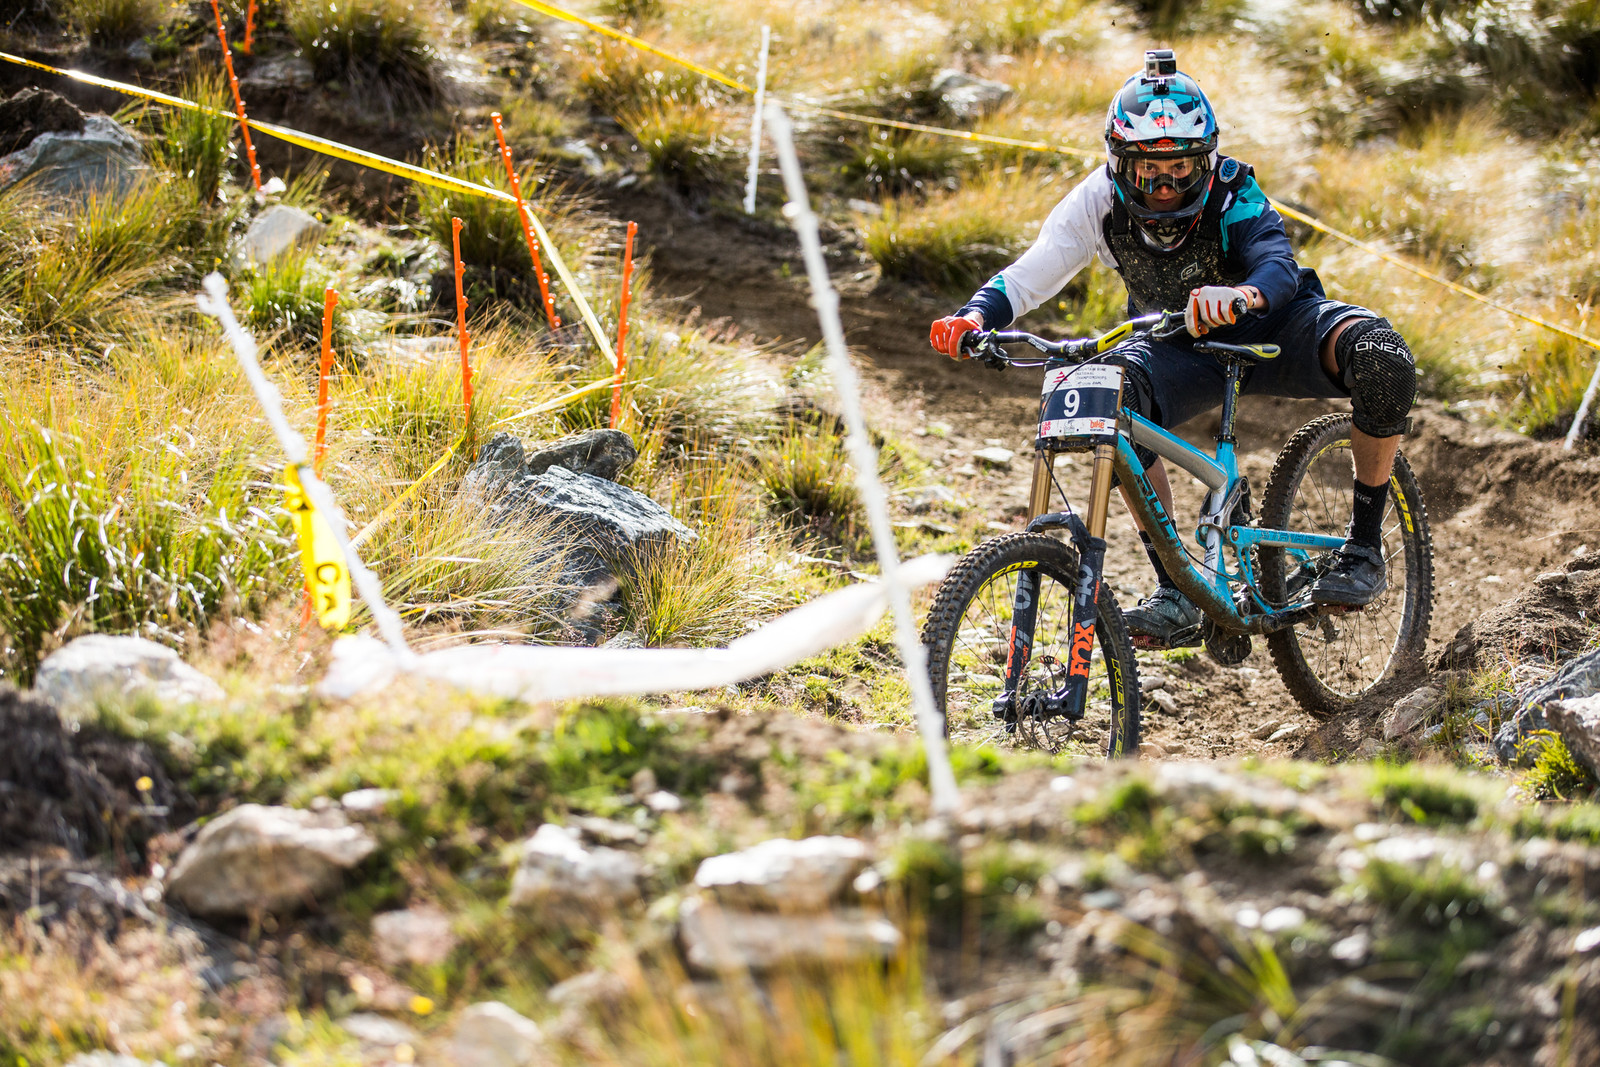 Josh Barthe - Blenki, Brook & More - 2018 NZ National Champs Day 1 - Mountain Biking Pictures - Vital MTB